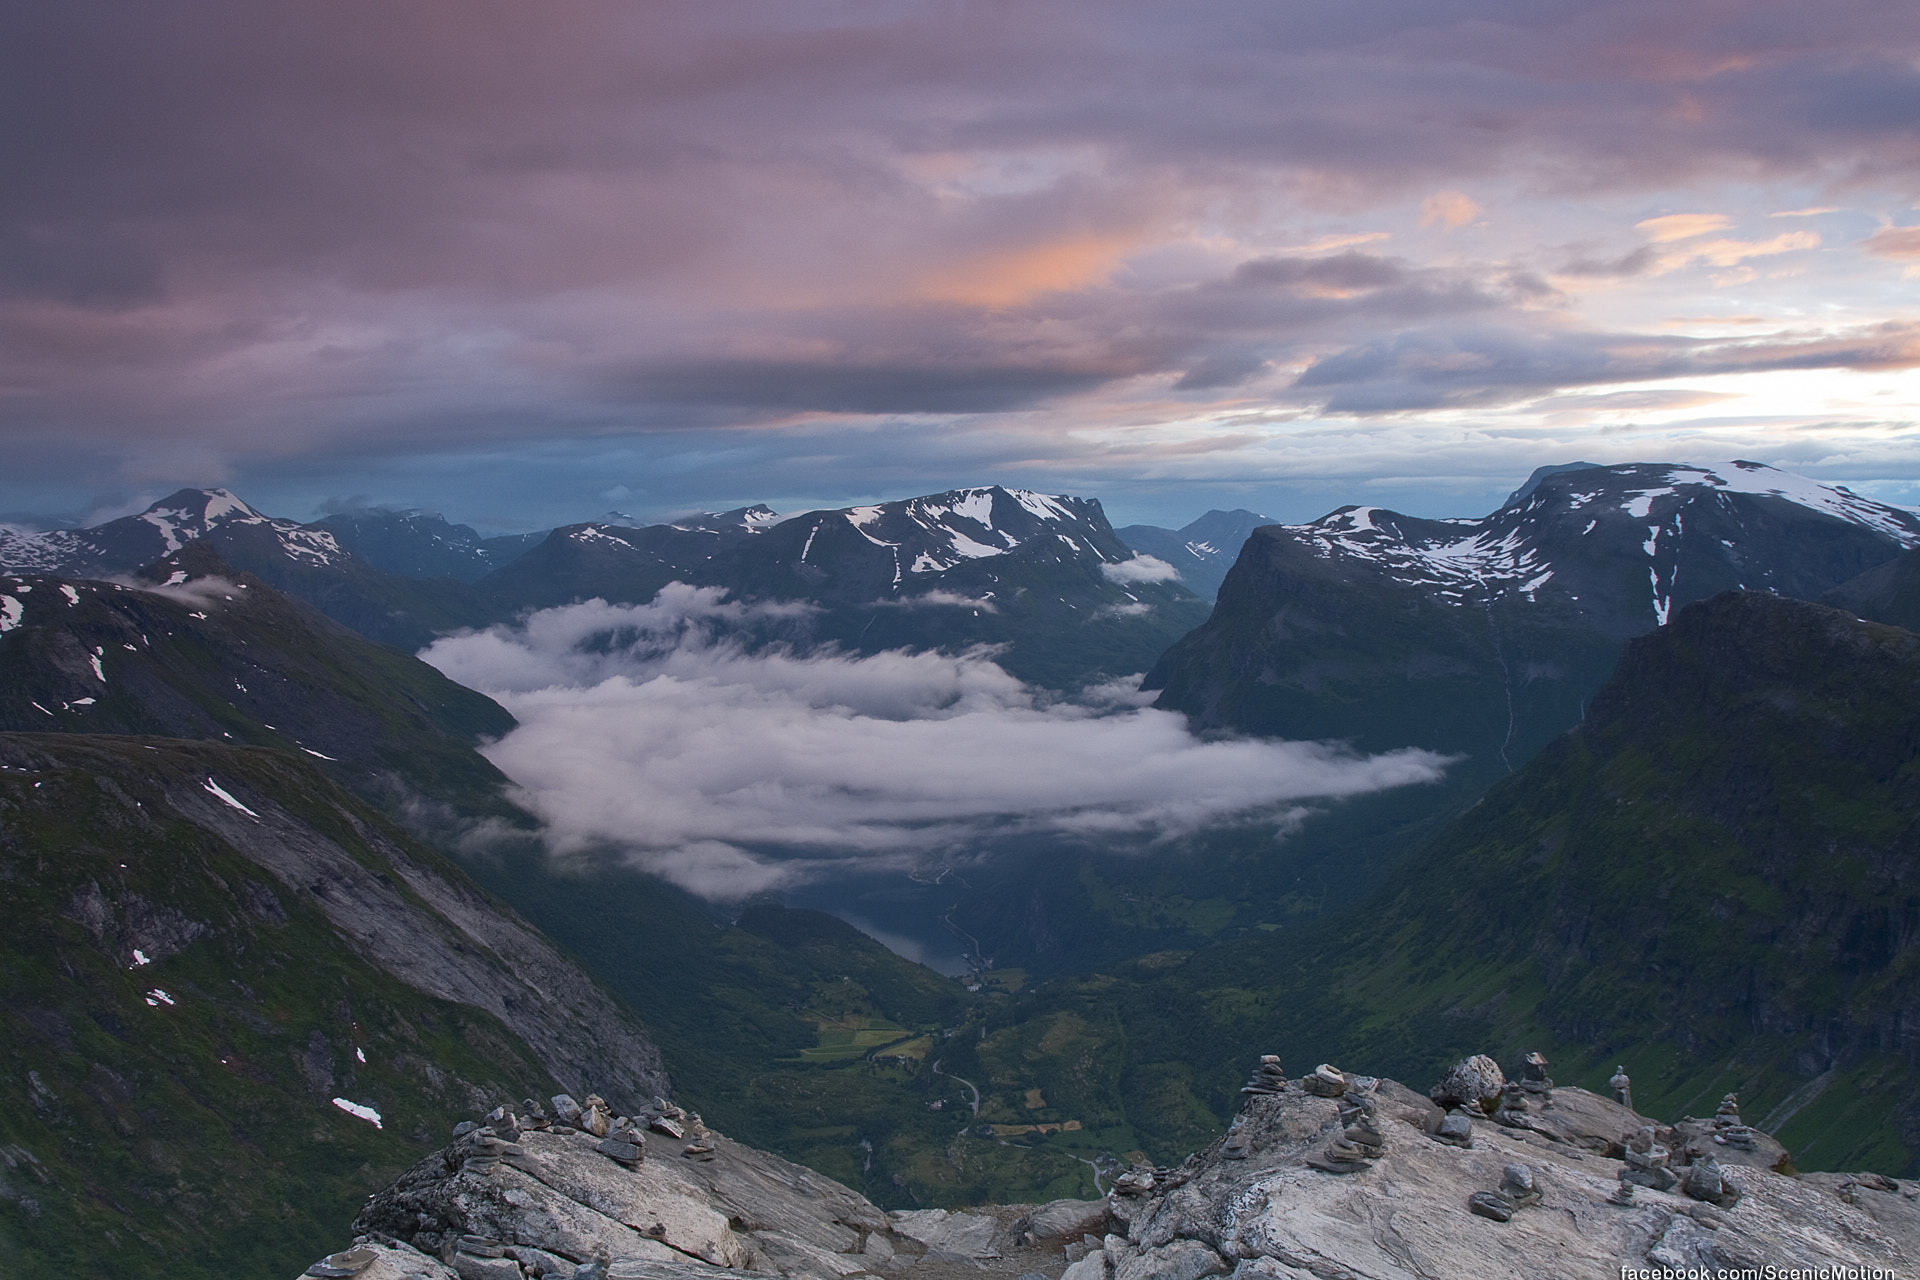 Photograph Dalsnibba in Geiranger by Morten Berg on 500px